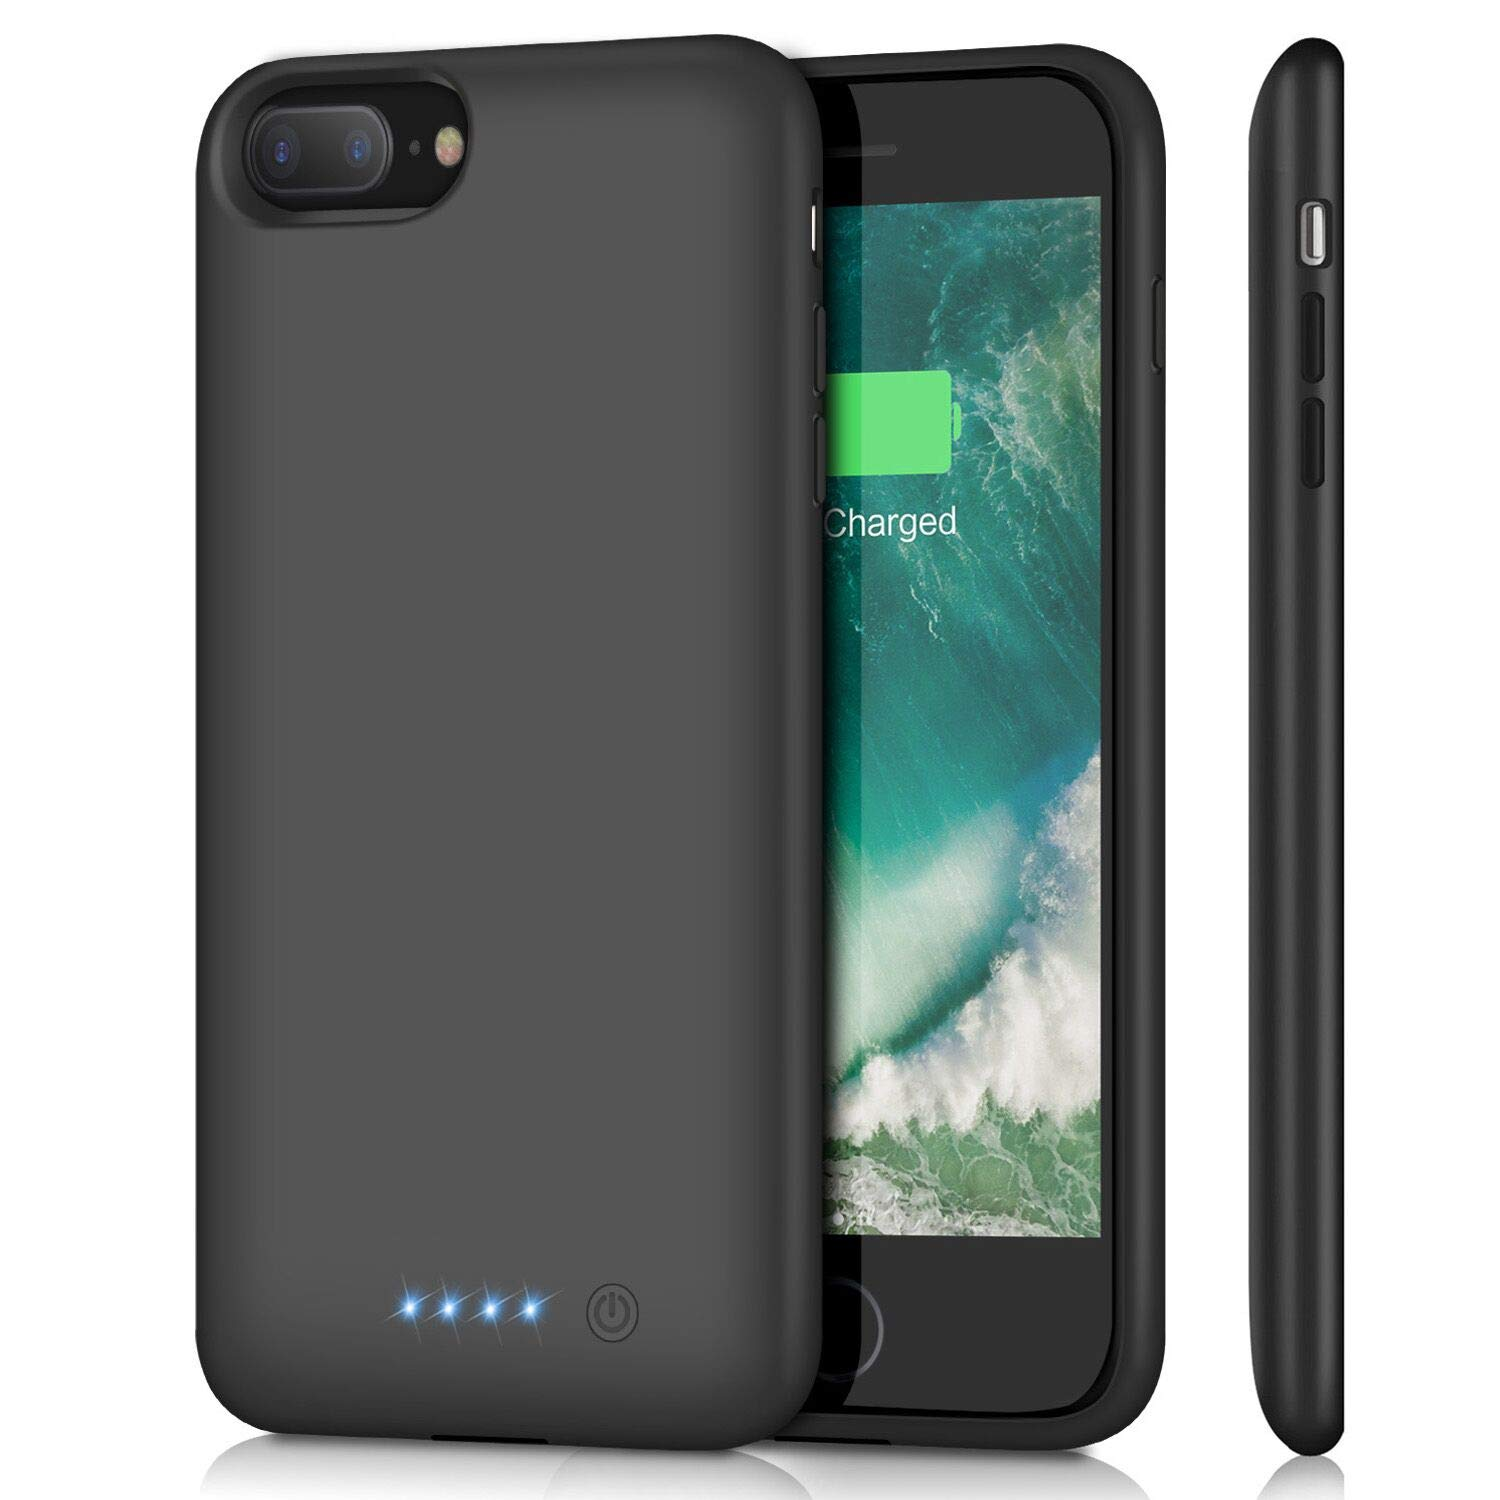 low priced 7c9d9 d9269 Best Battery Cases for iPhone 7 Plus in 2019 | iMore